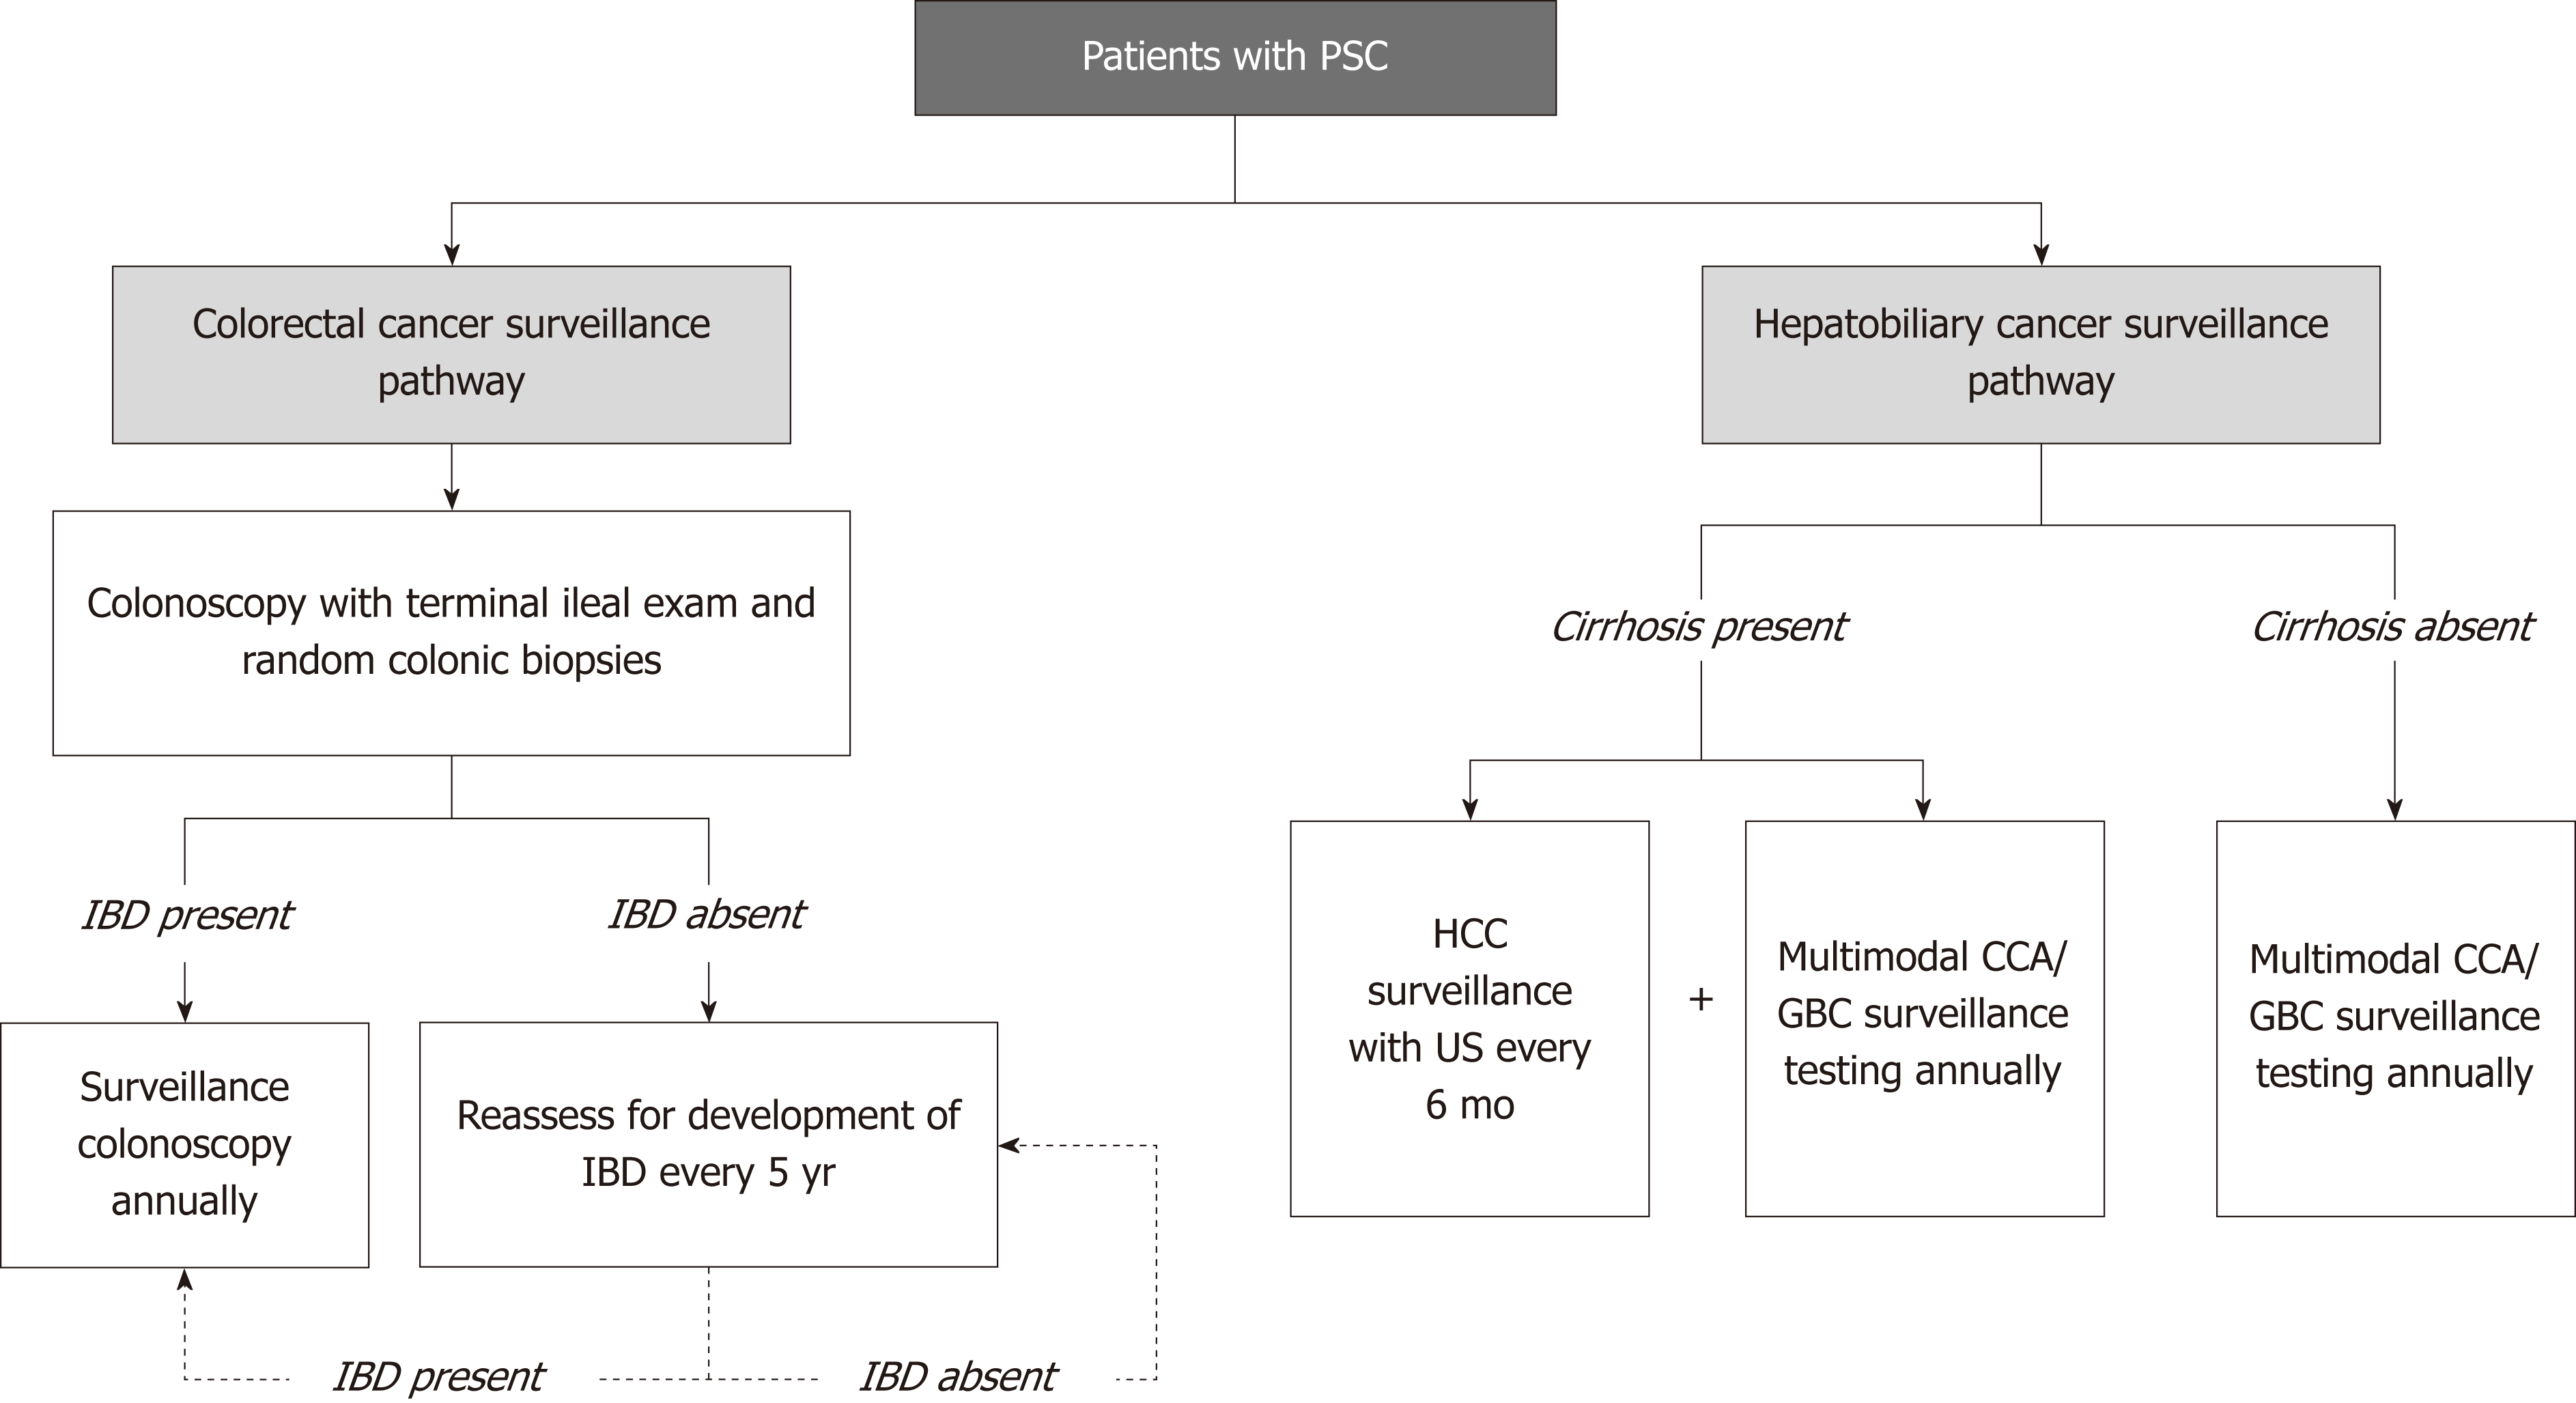 Cancer risk in primary sclerosing cholangitis: Epidemiology